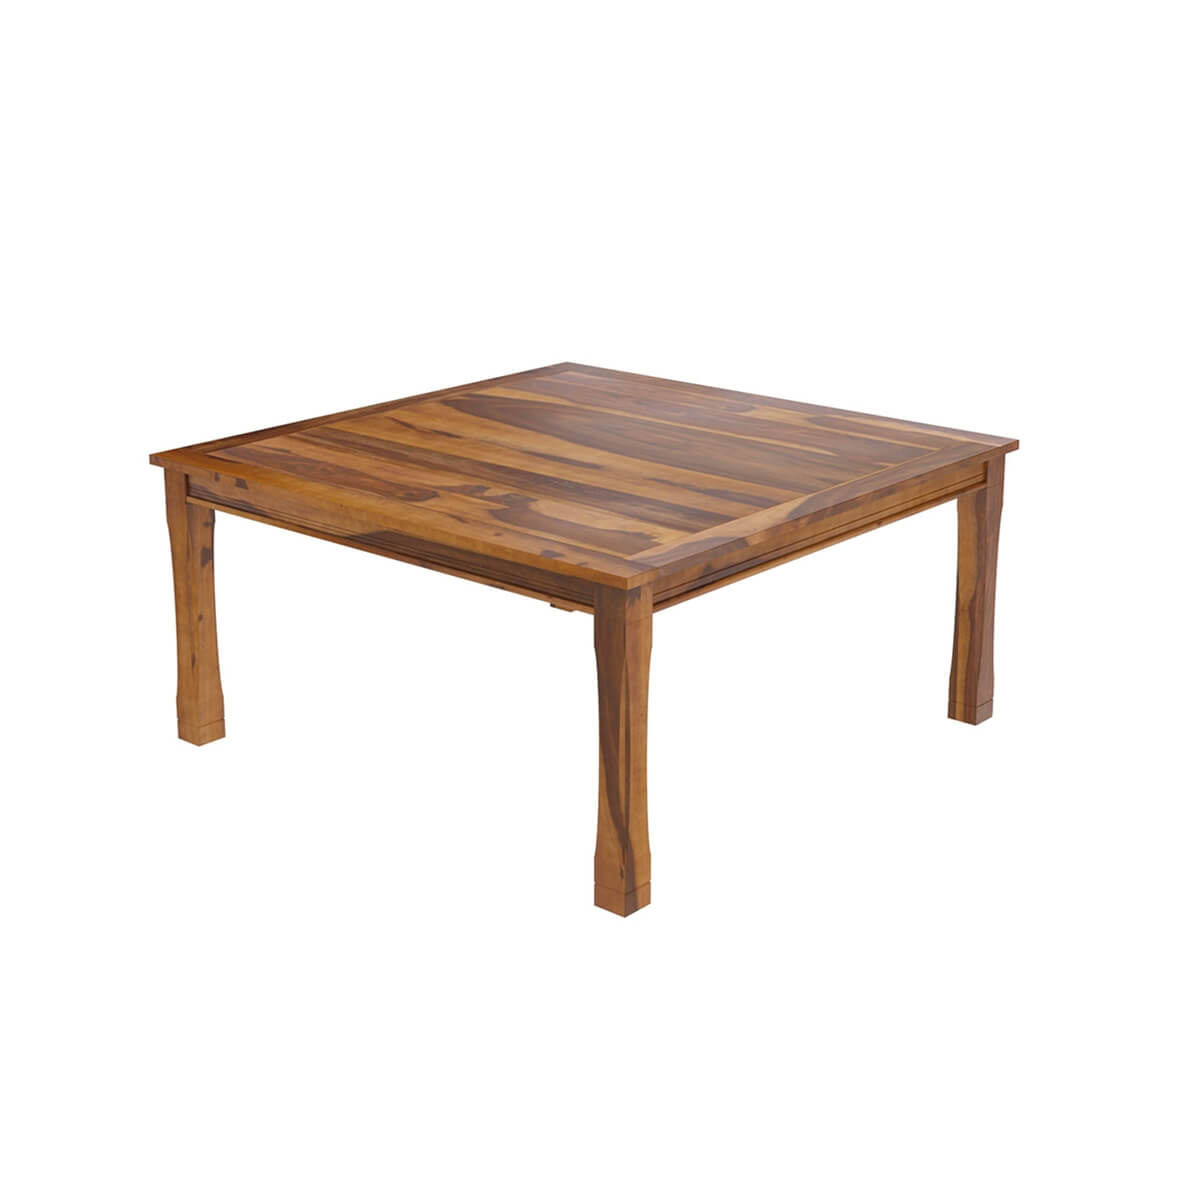 Appalachian Transitional Square Wood Dining Room Table